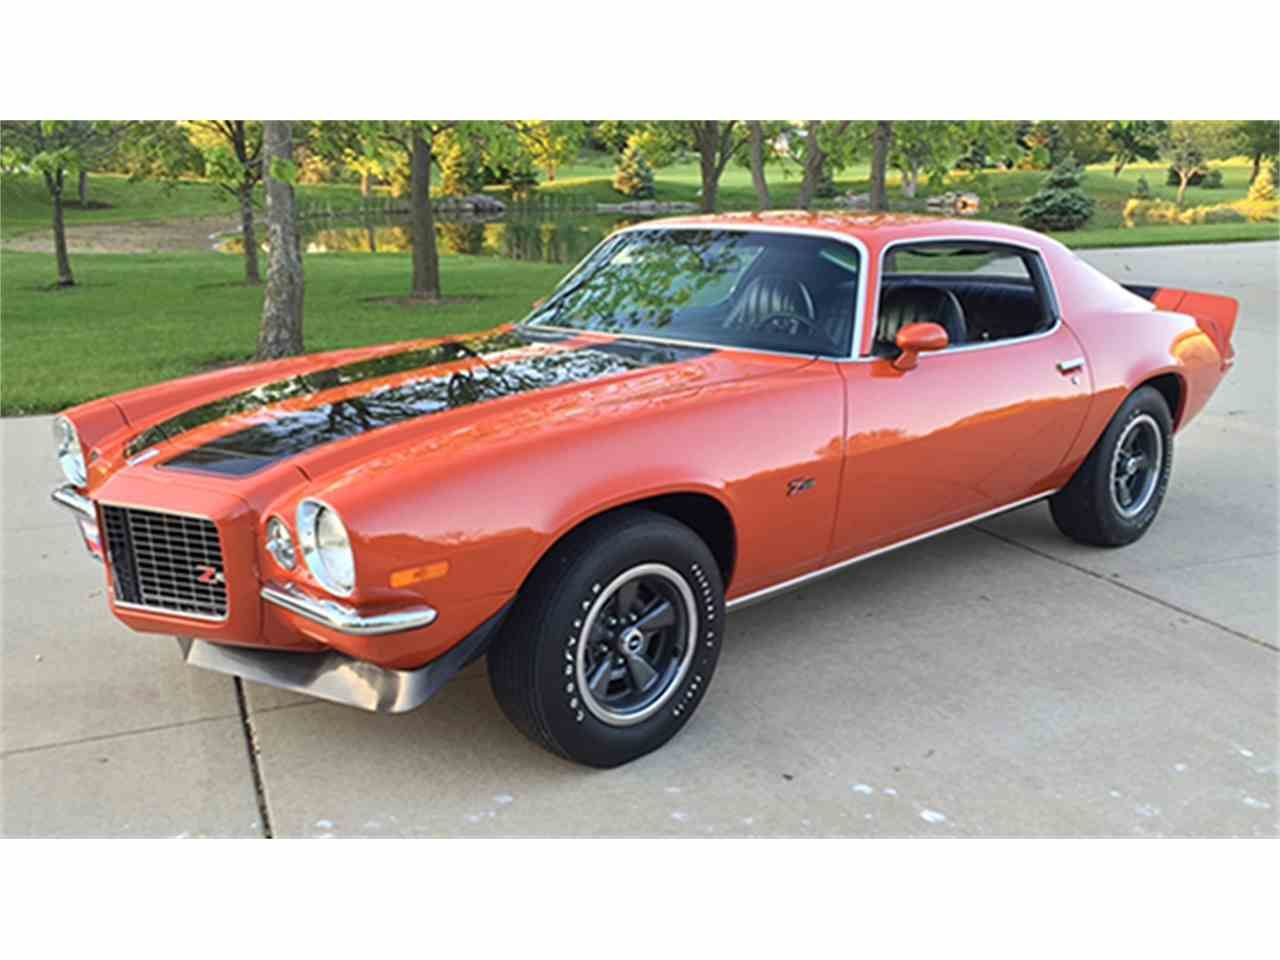 Photo 1 Chevy Muscle Cars Hot Rods Cars Muscle Camaro Iroc